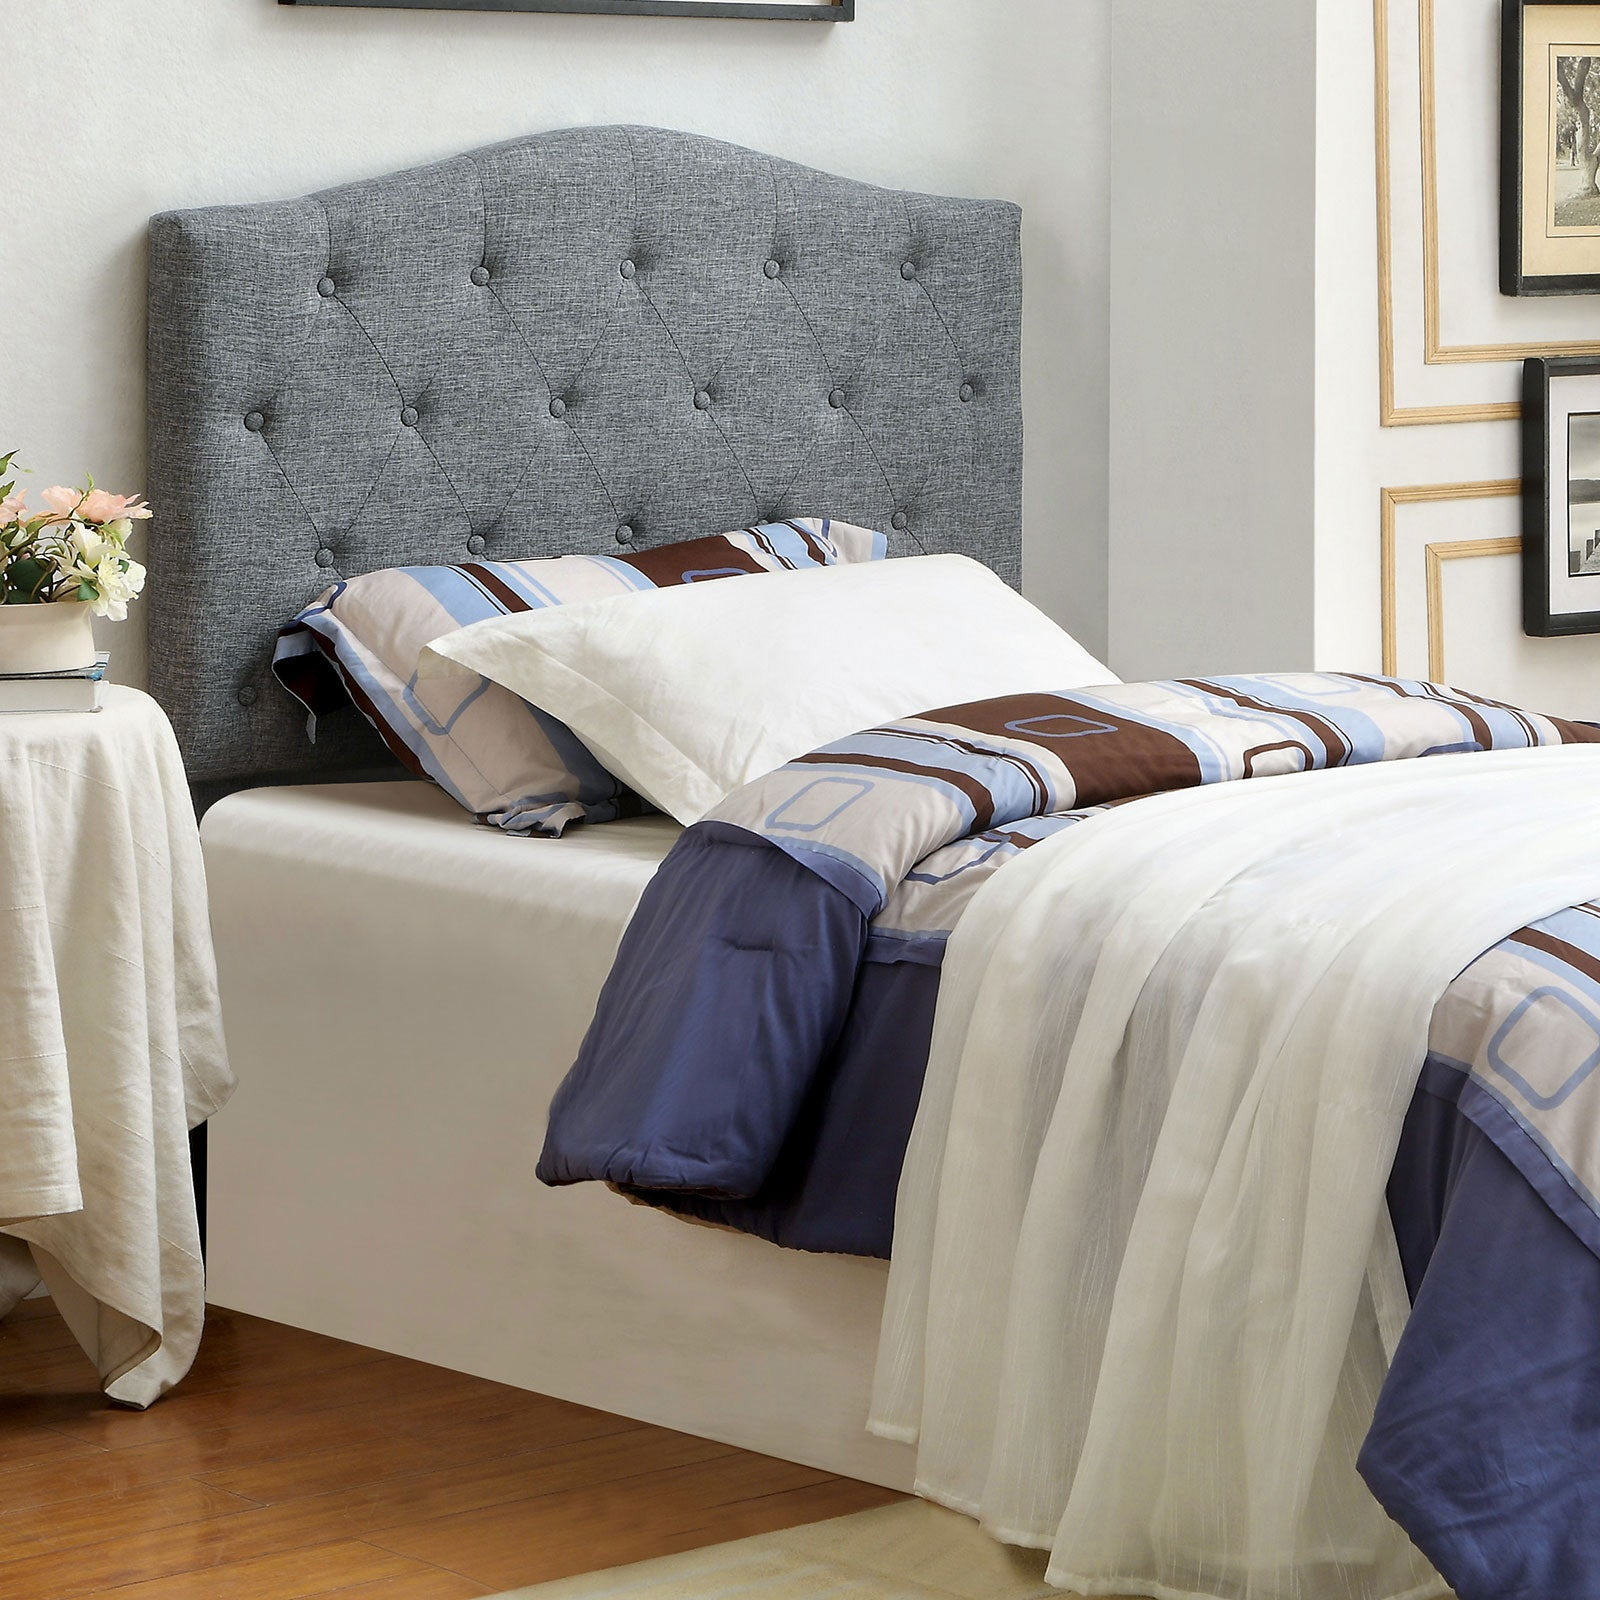 ALIPAZ Twin Headboard Gray - InteriorDesignsToGo.com